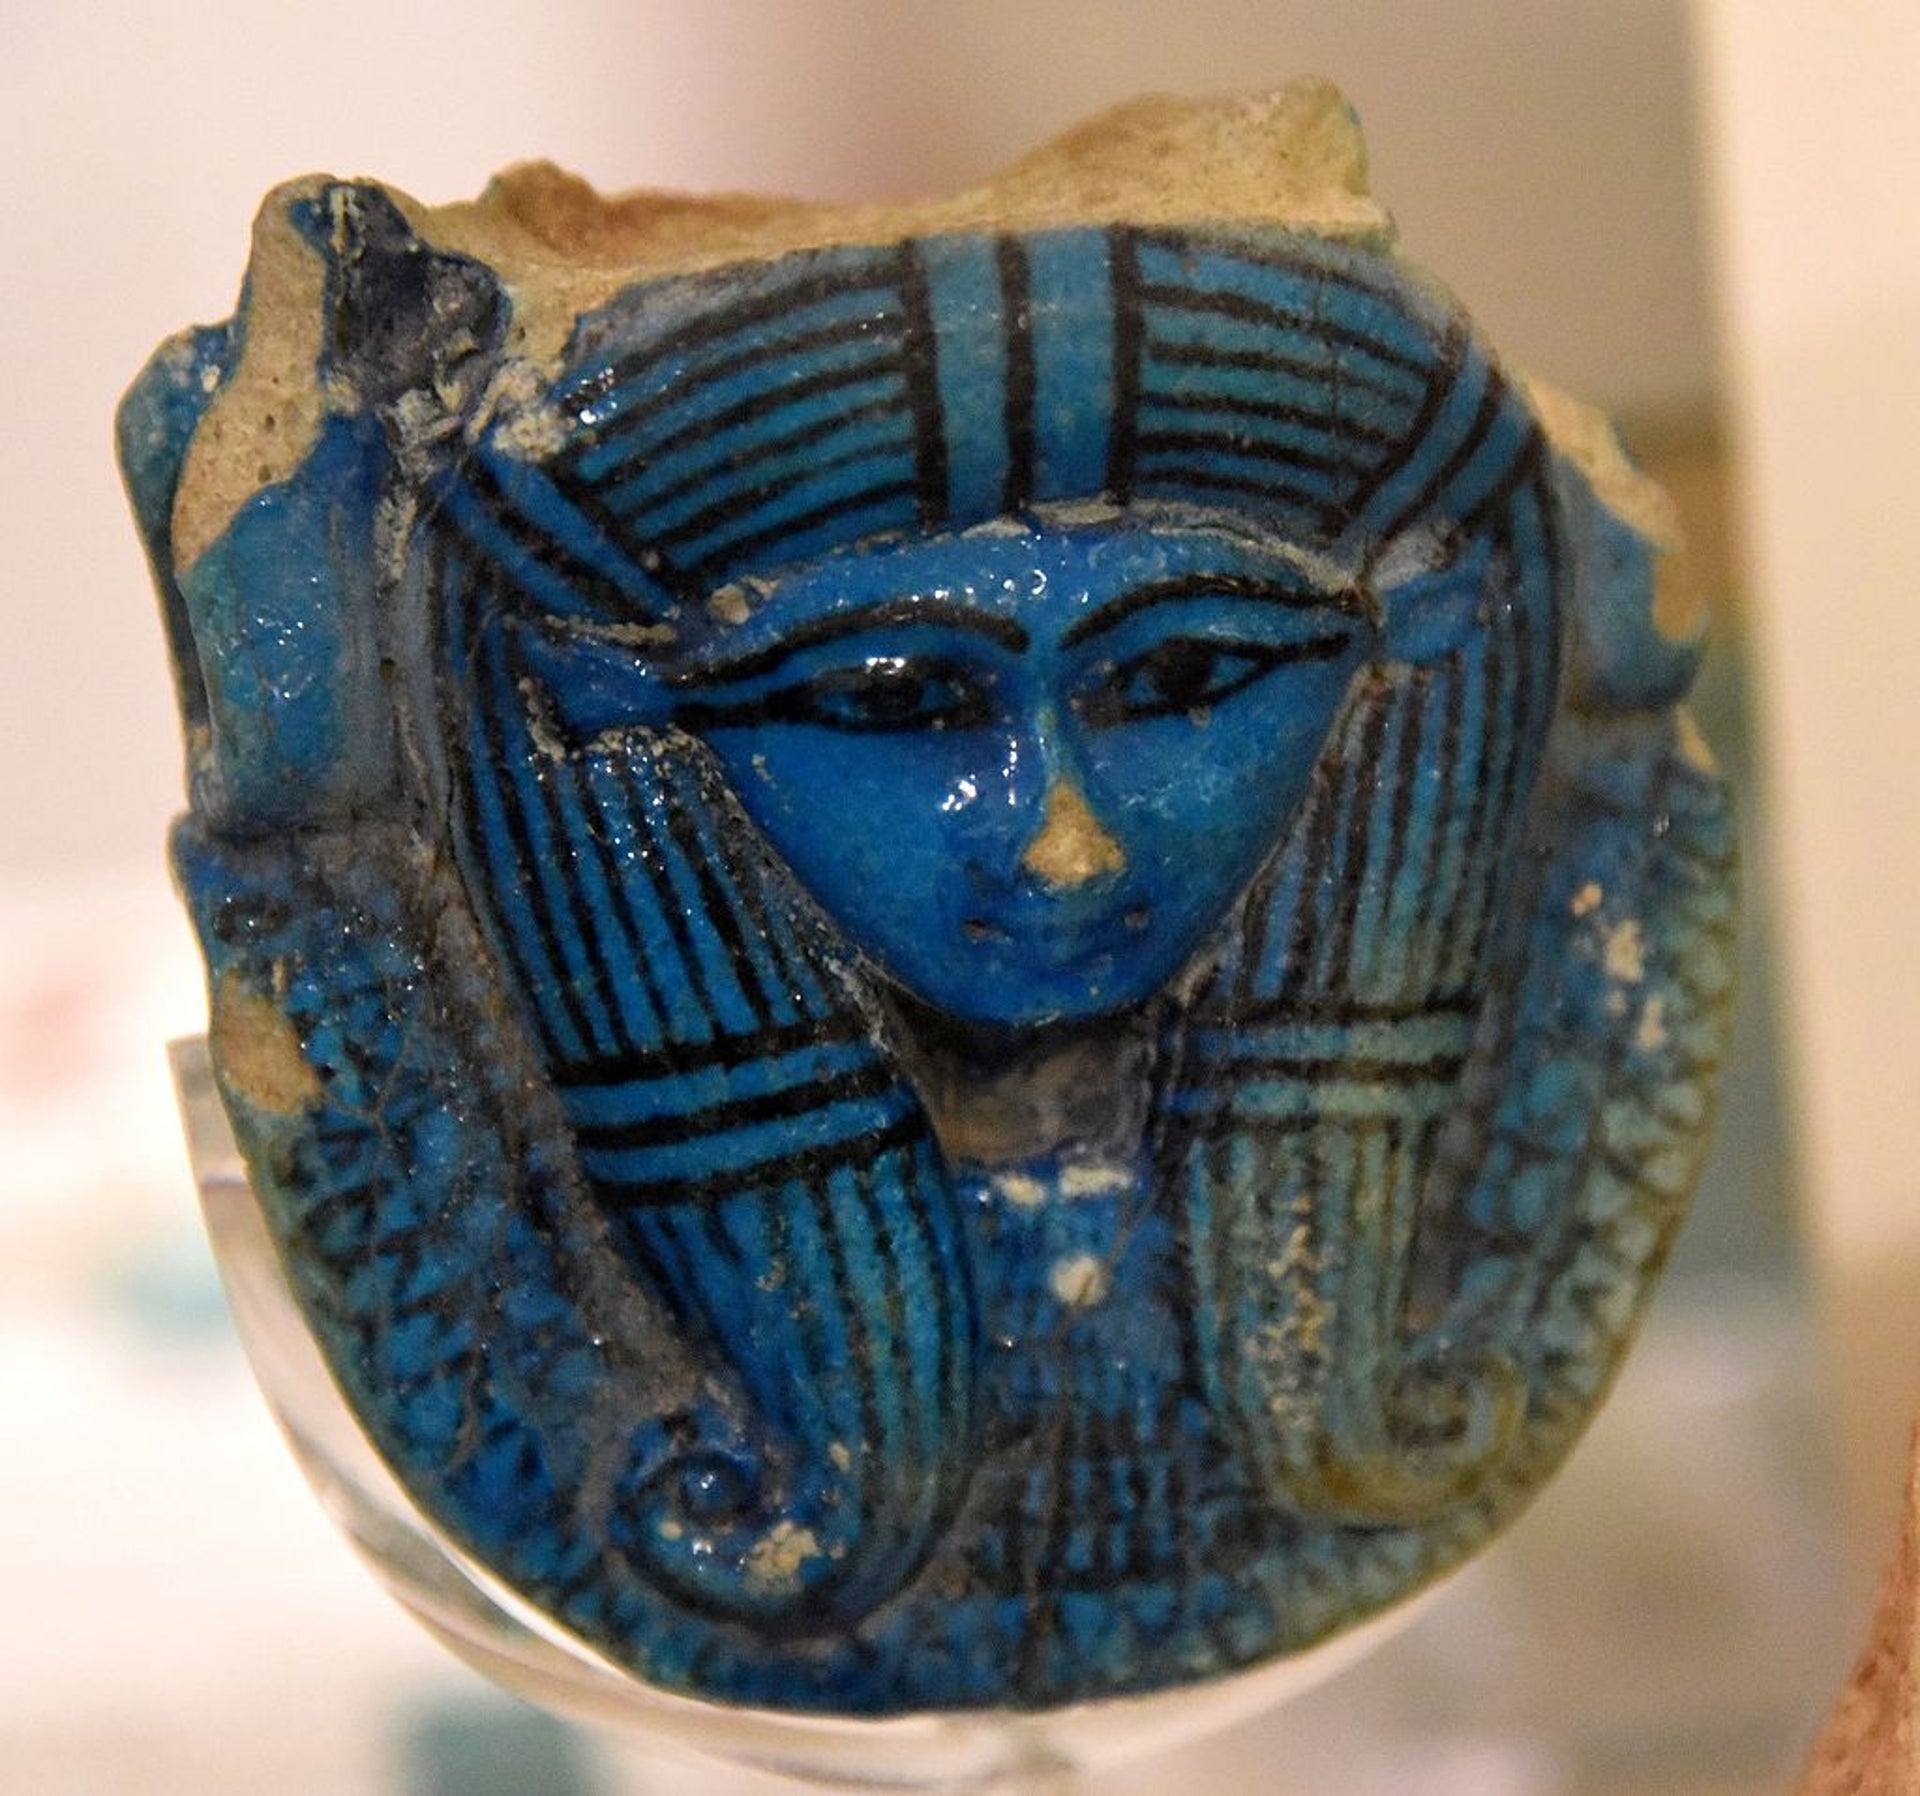 Hathor's head. Faience, from a sistrum's handle. 8th Dynasty. From Thebes, Egypt. T